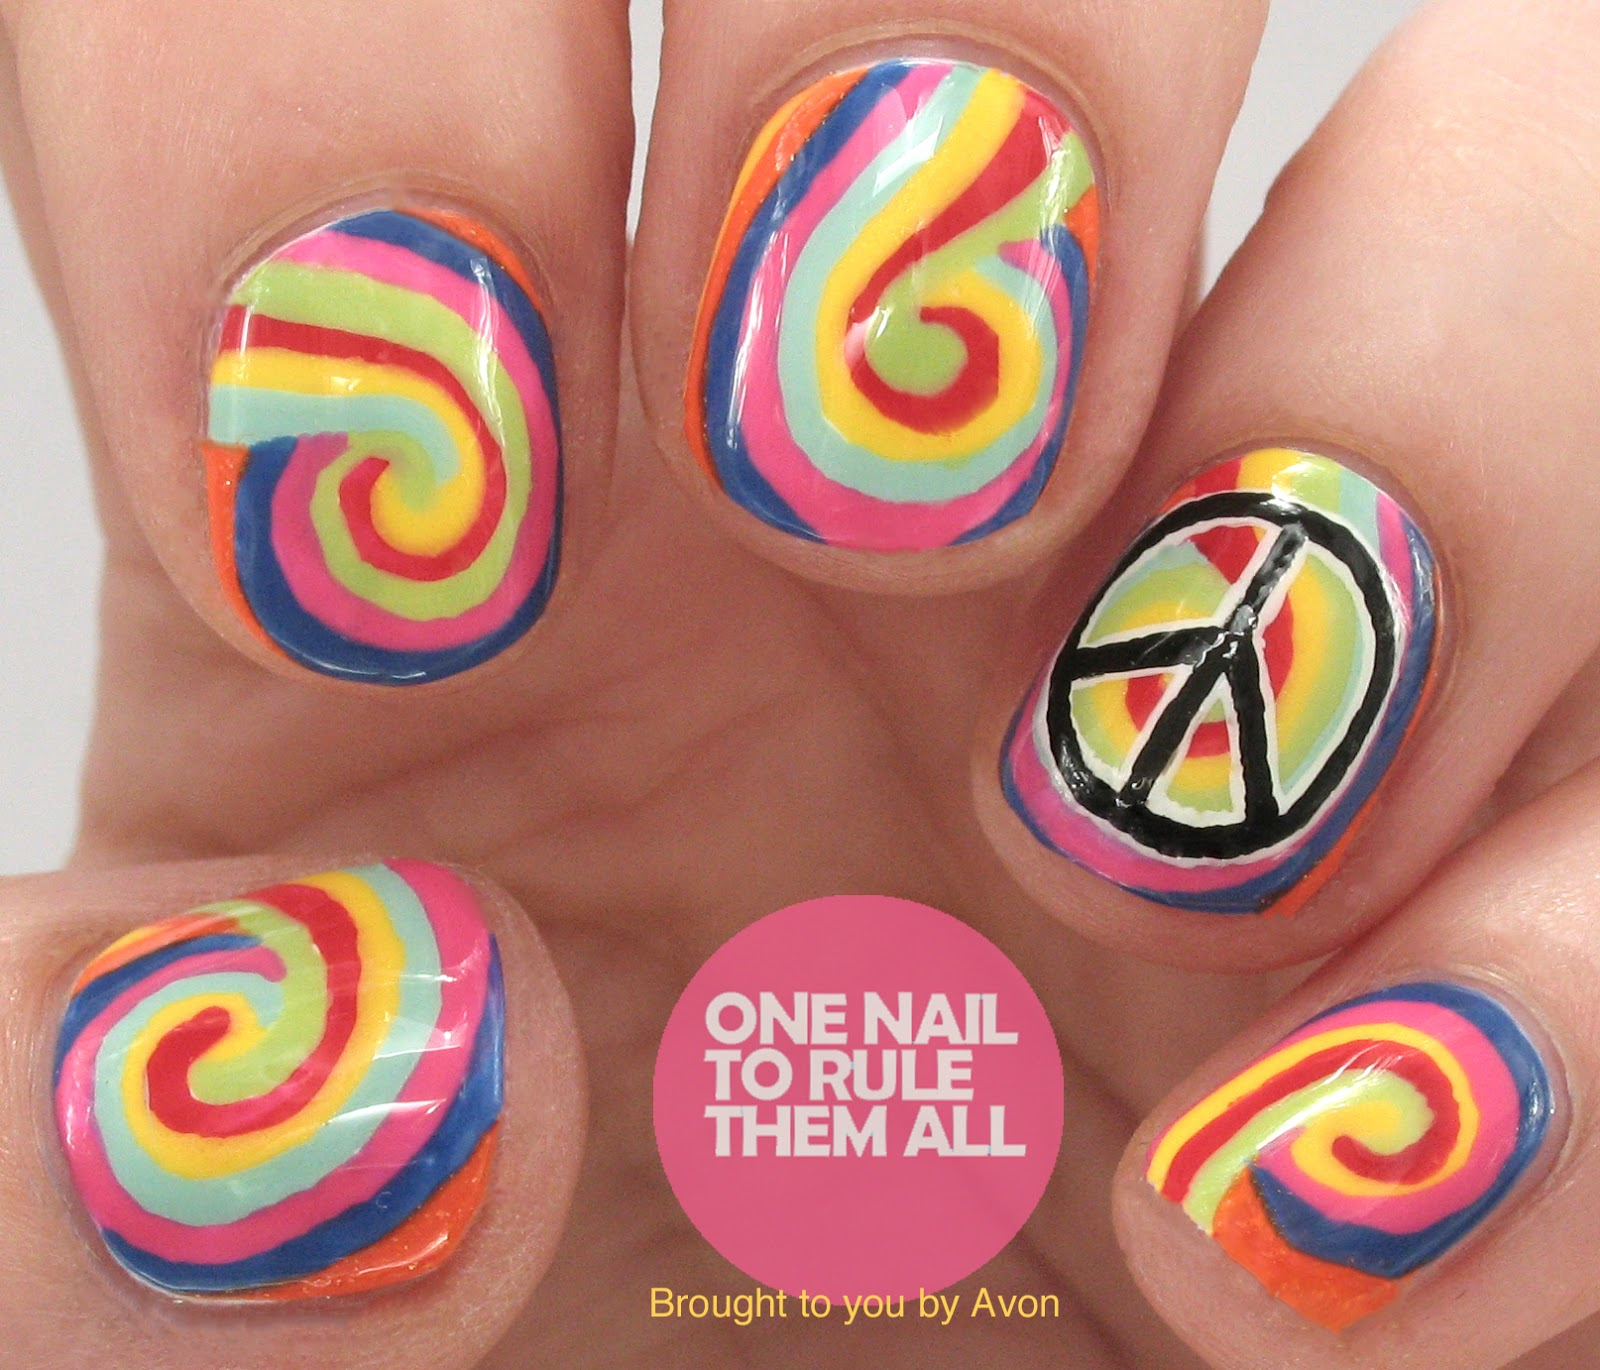 One Nail To Rule Them All Crazy Peace Nail Art For Avon